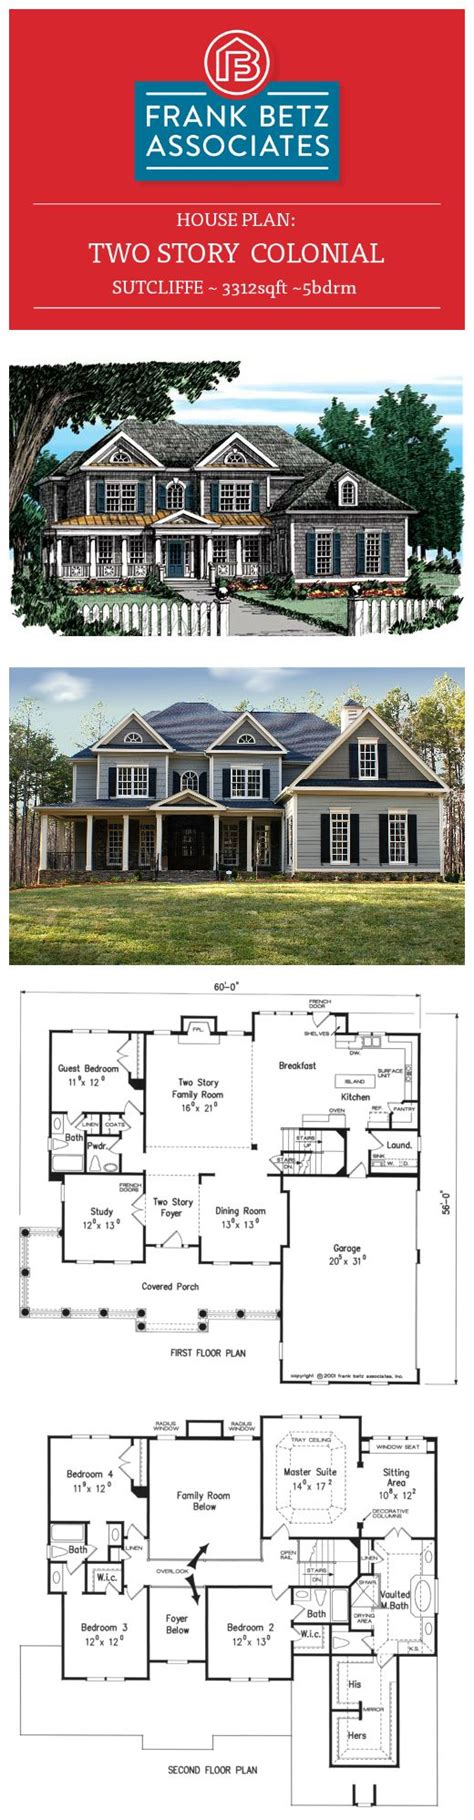 two colonial house plans sutcliffe 3312sqft 5bdrm two colonial house plan by